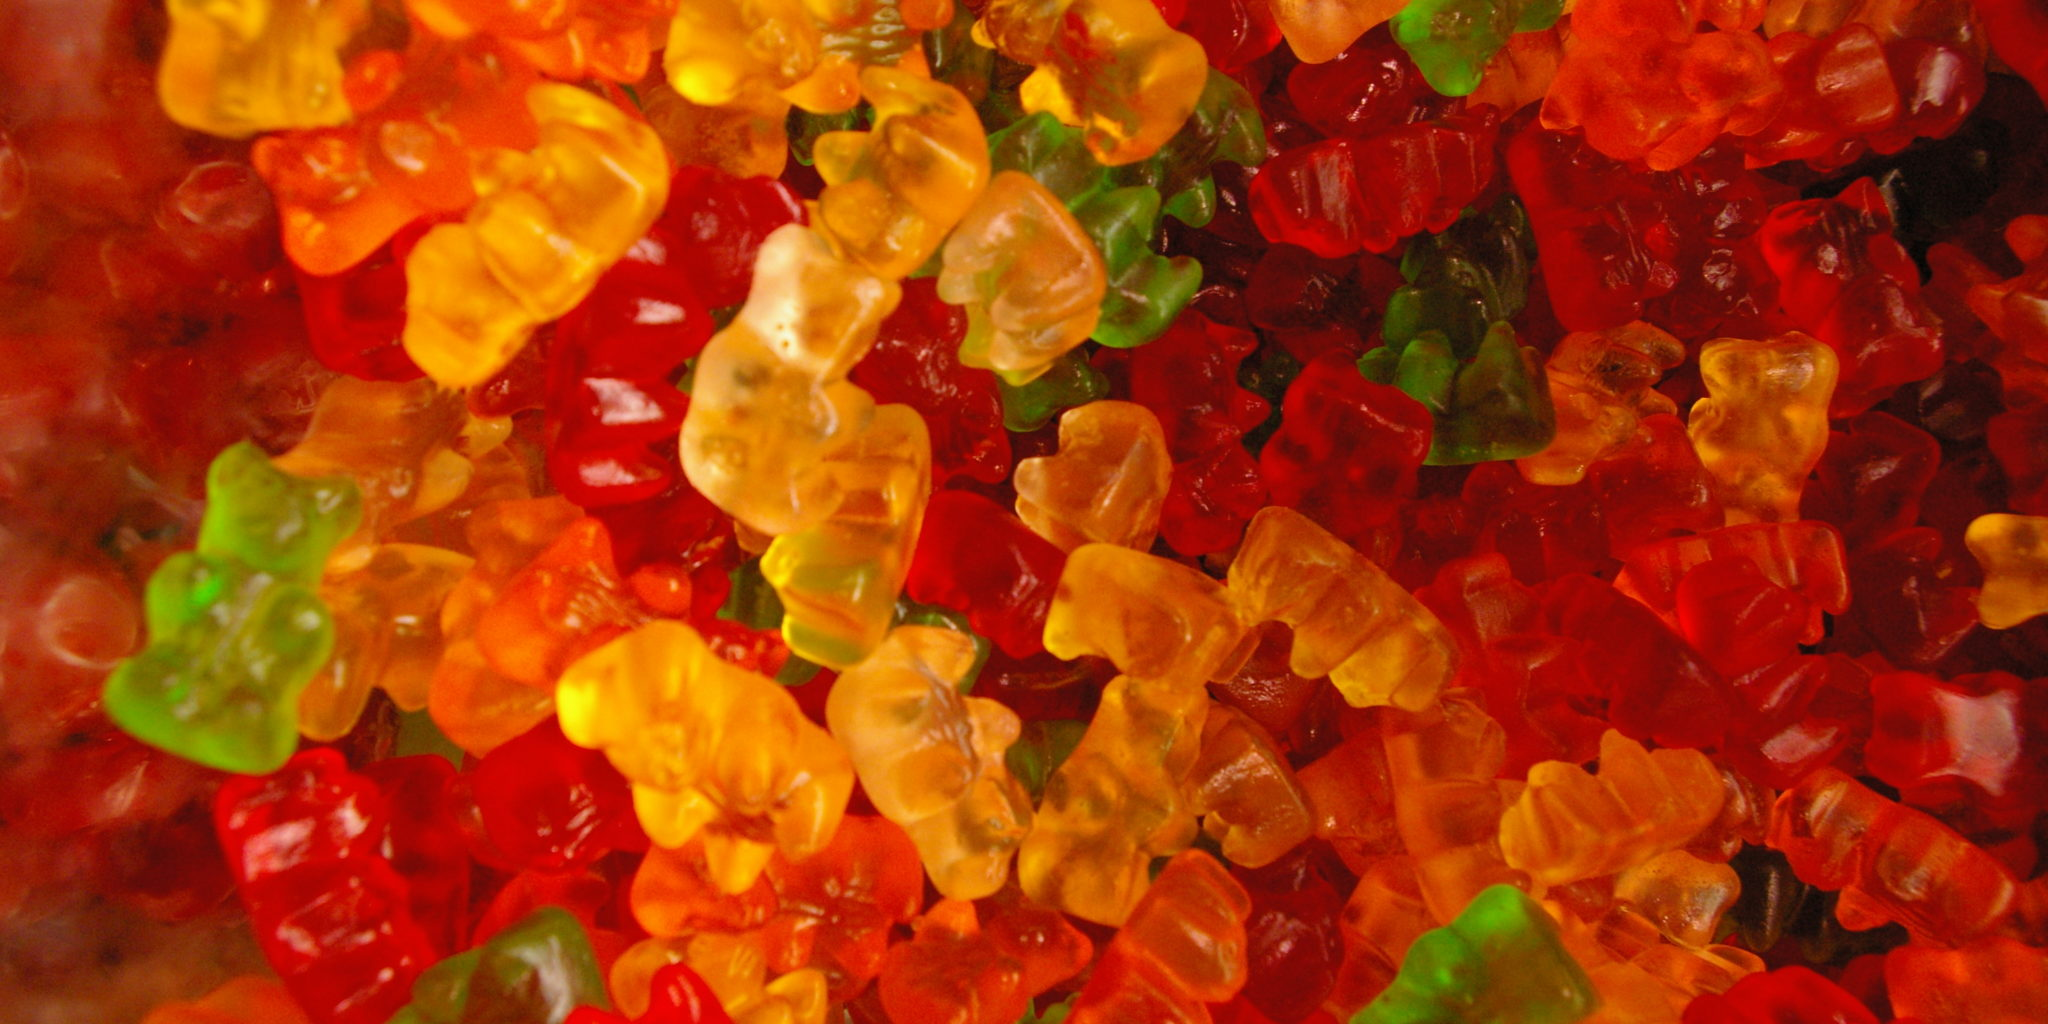 How to Make Weed Gummies (and Tincture): 6 Easy Steps